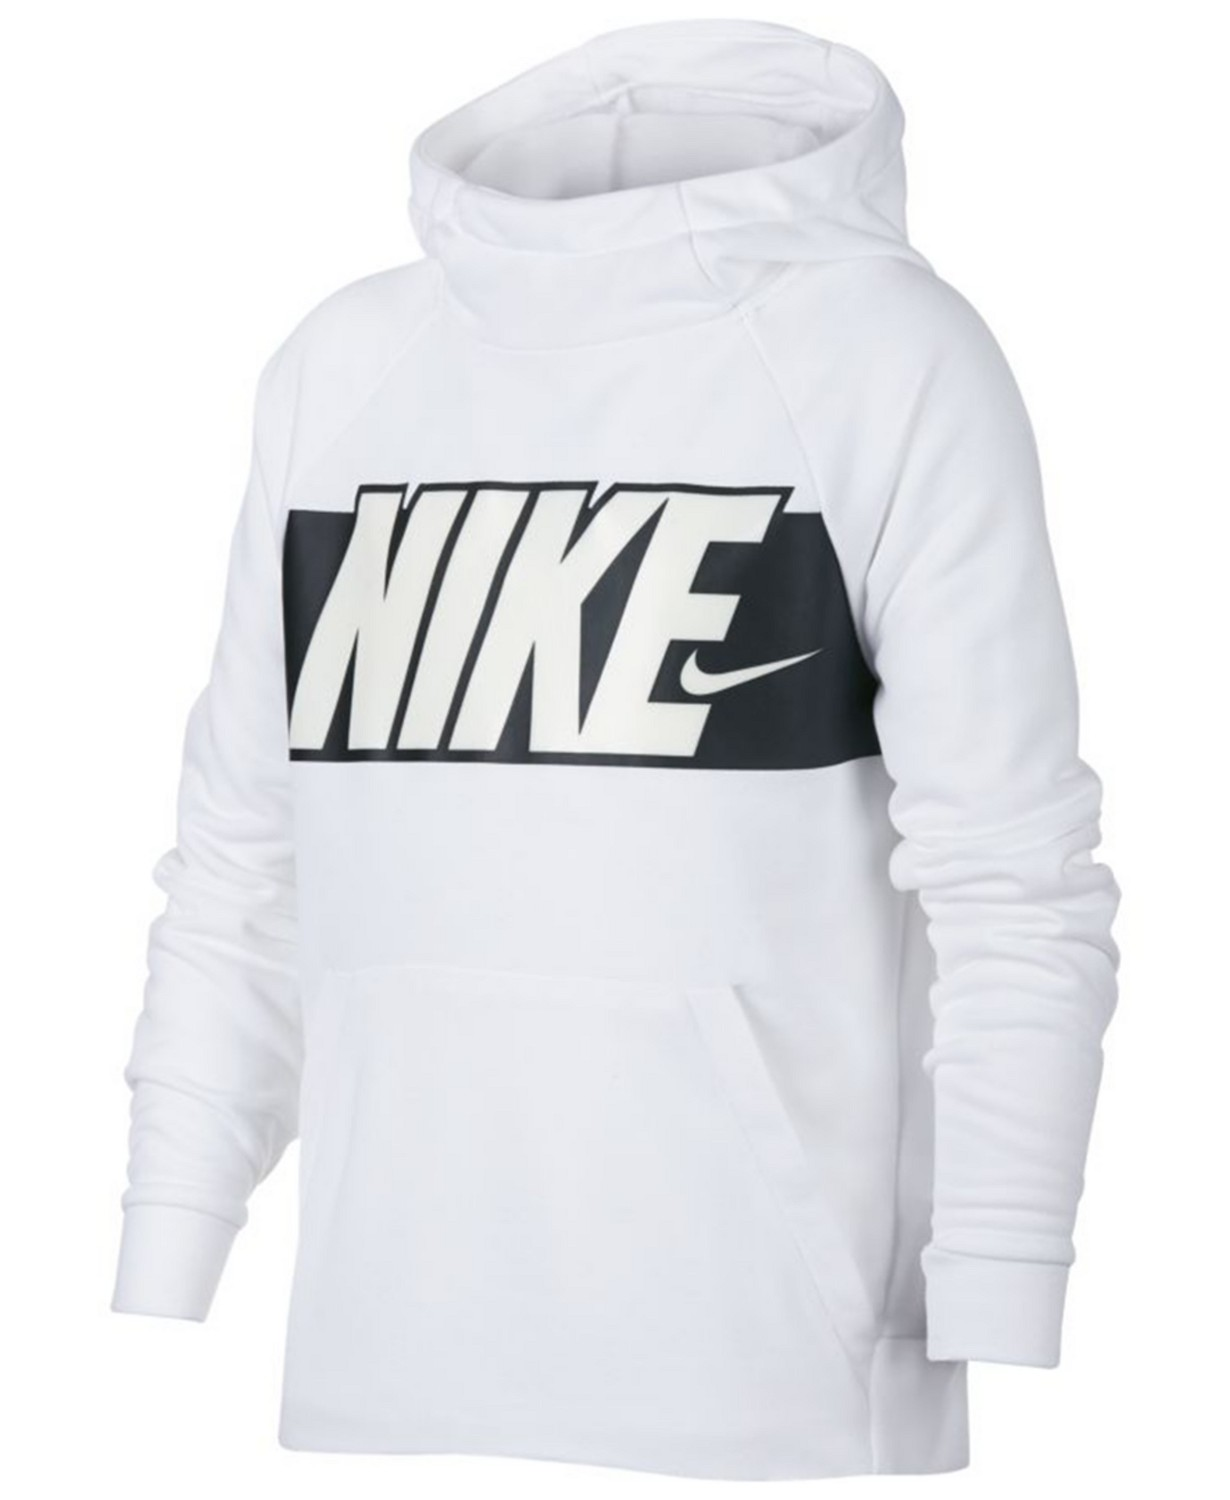 Save 60% on Nike Big Boys Logo-Print Hoodie